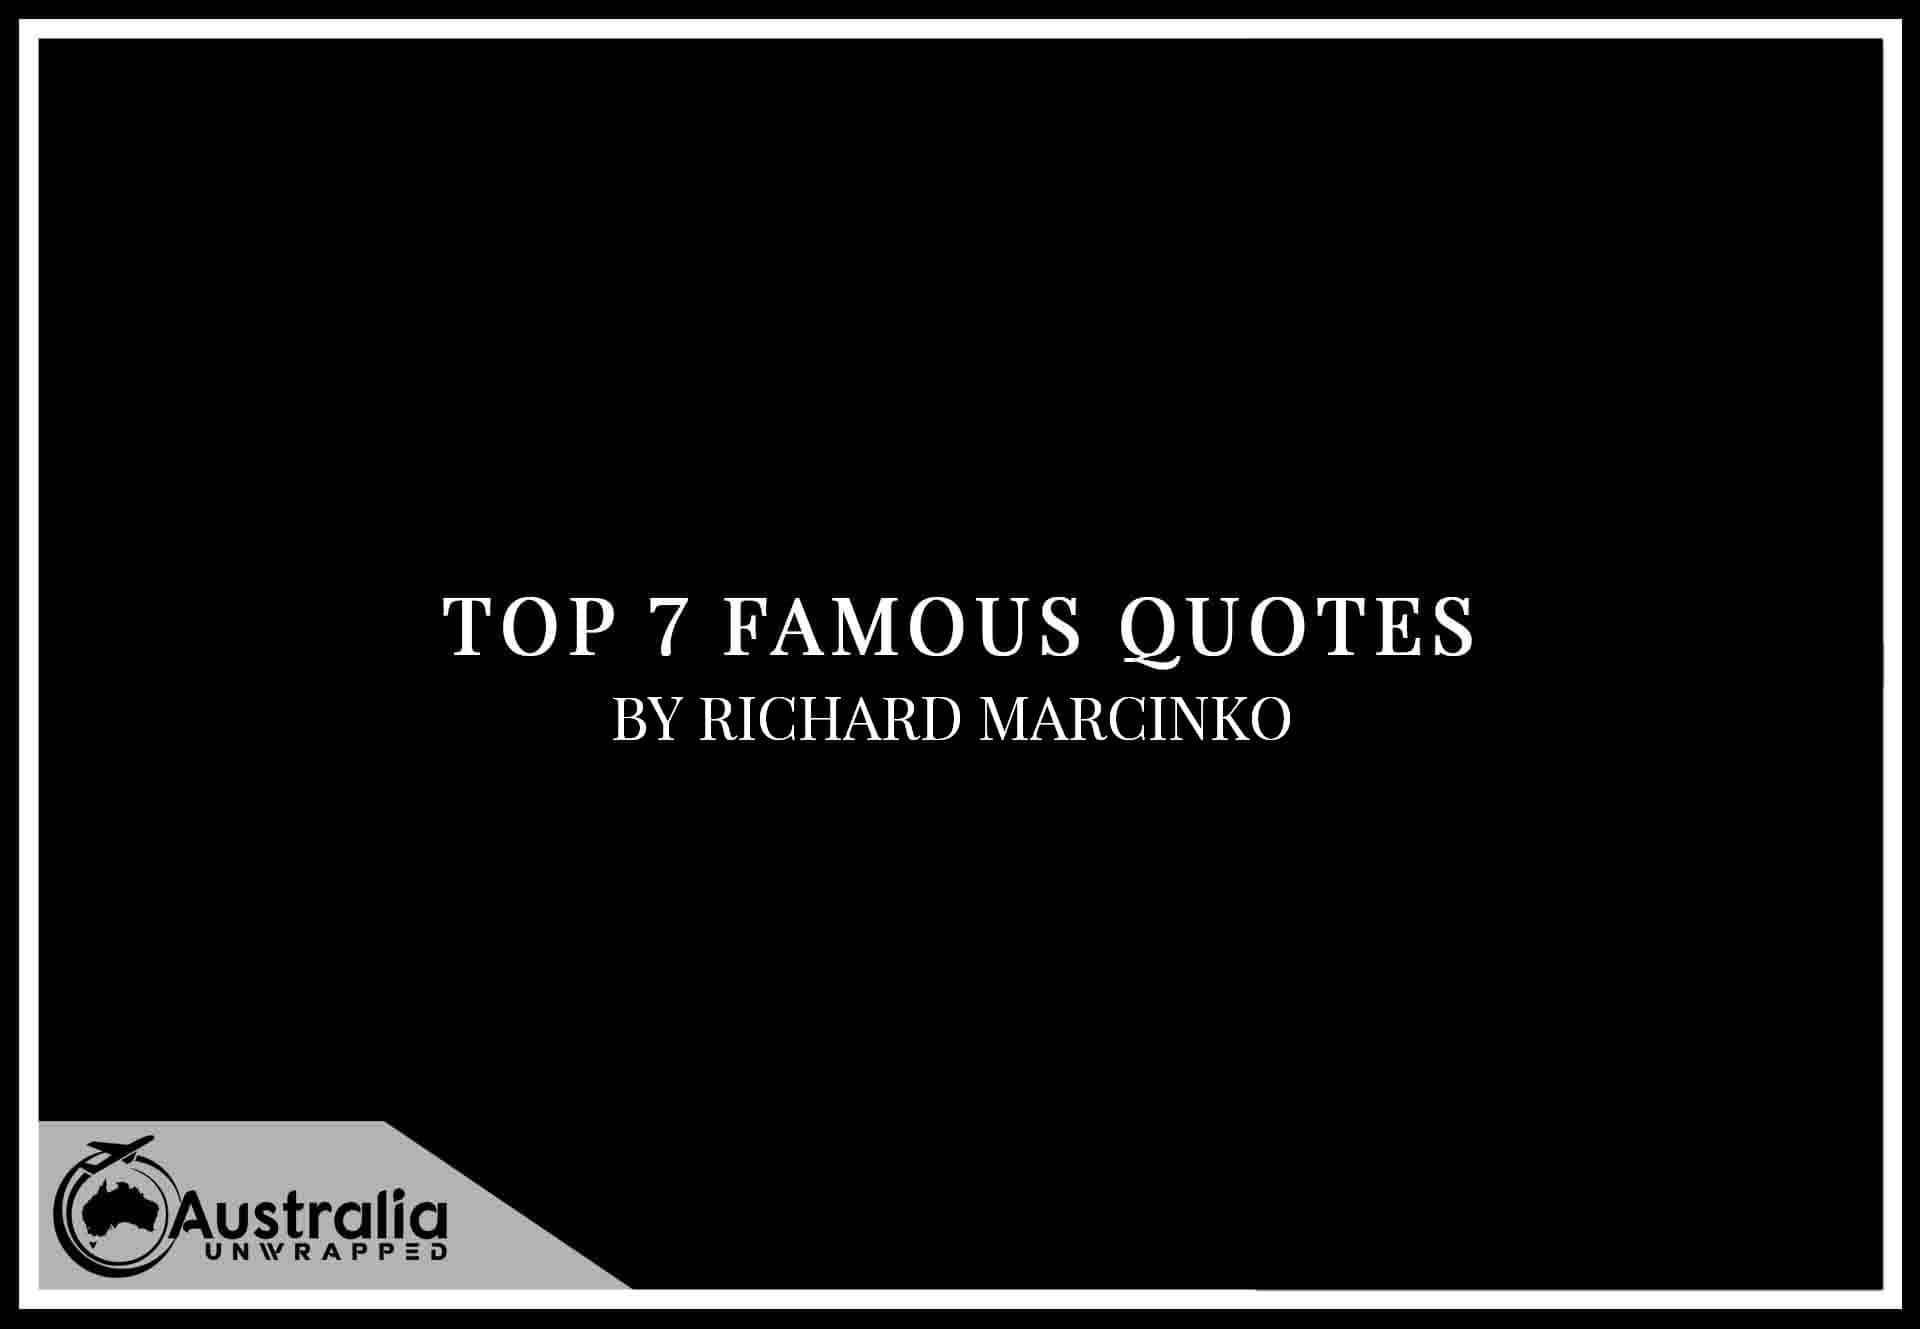 Richard Marcinko's Top 7 Popular and Famous Quotes